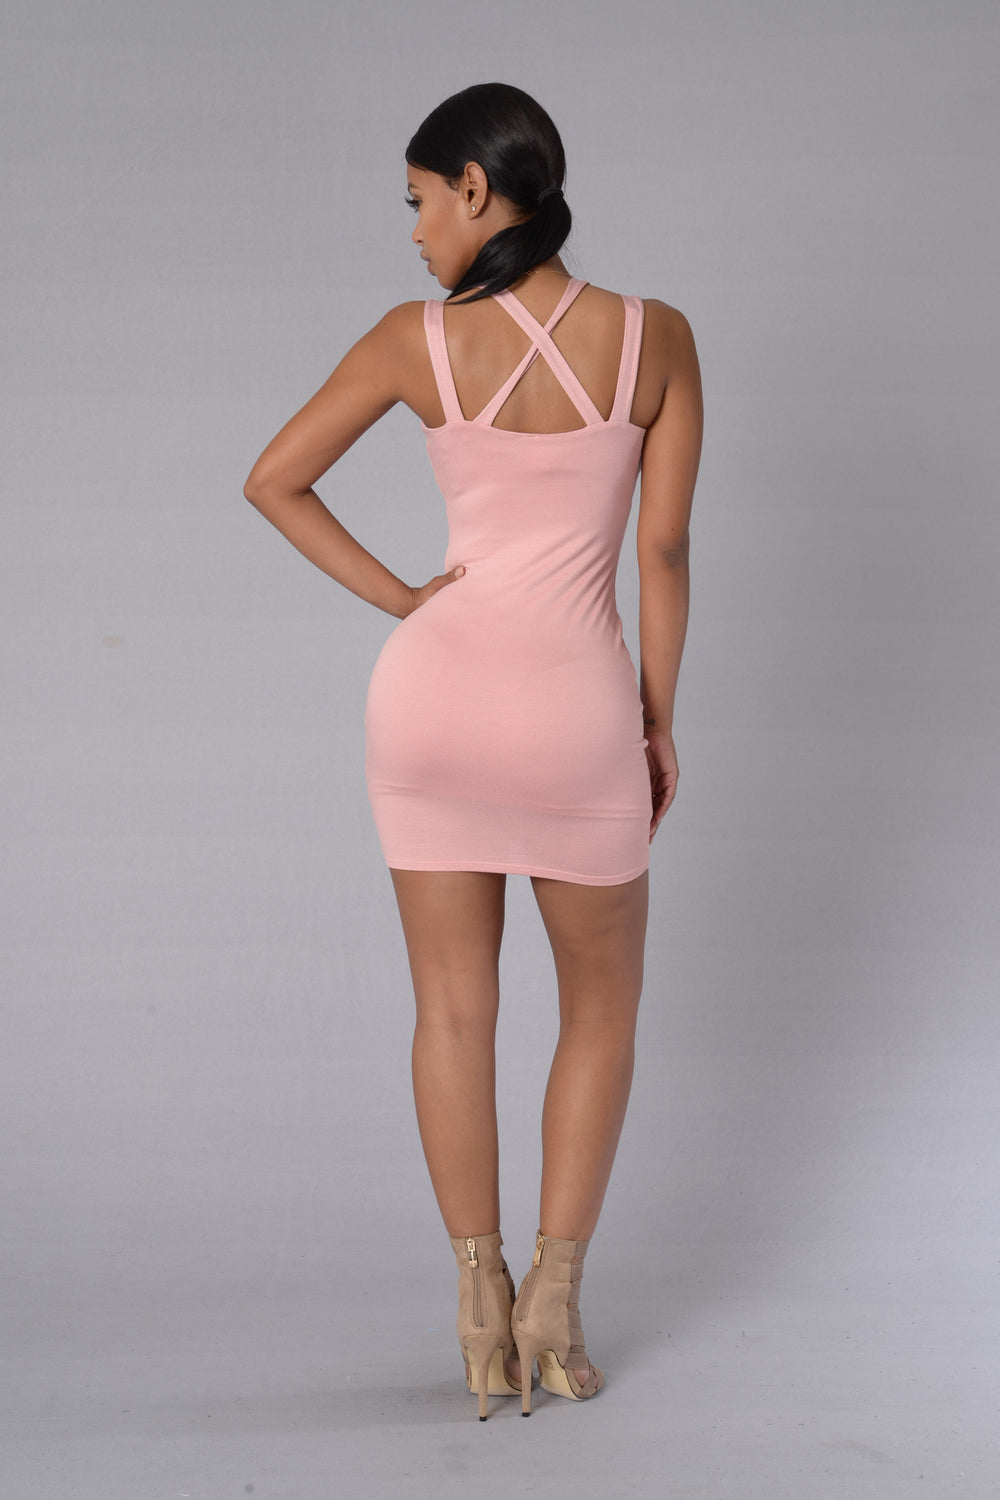 Broken Promises Dress - Dusty Pink